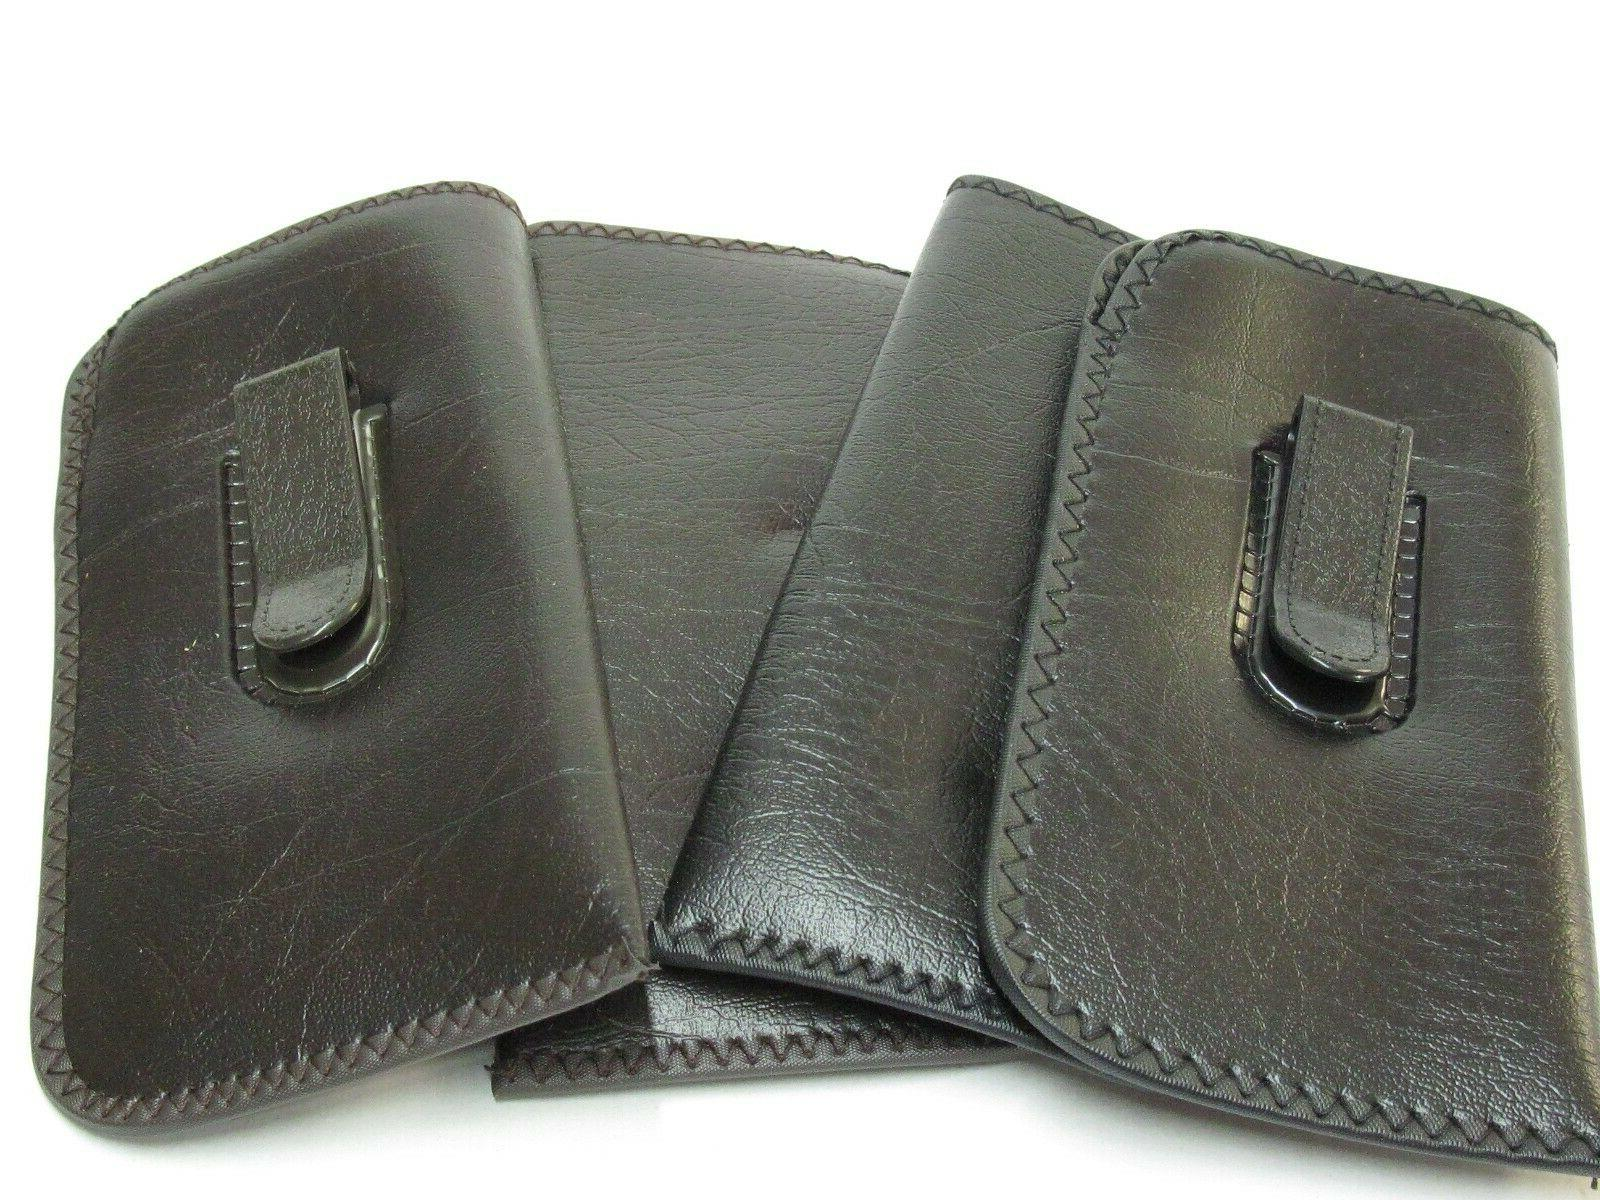 eyeglasses soft cases with pocket clips two